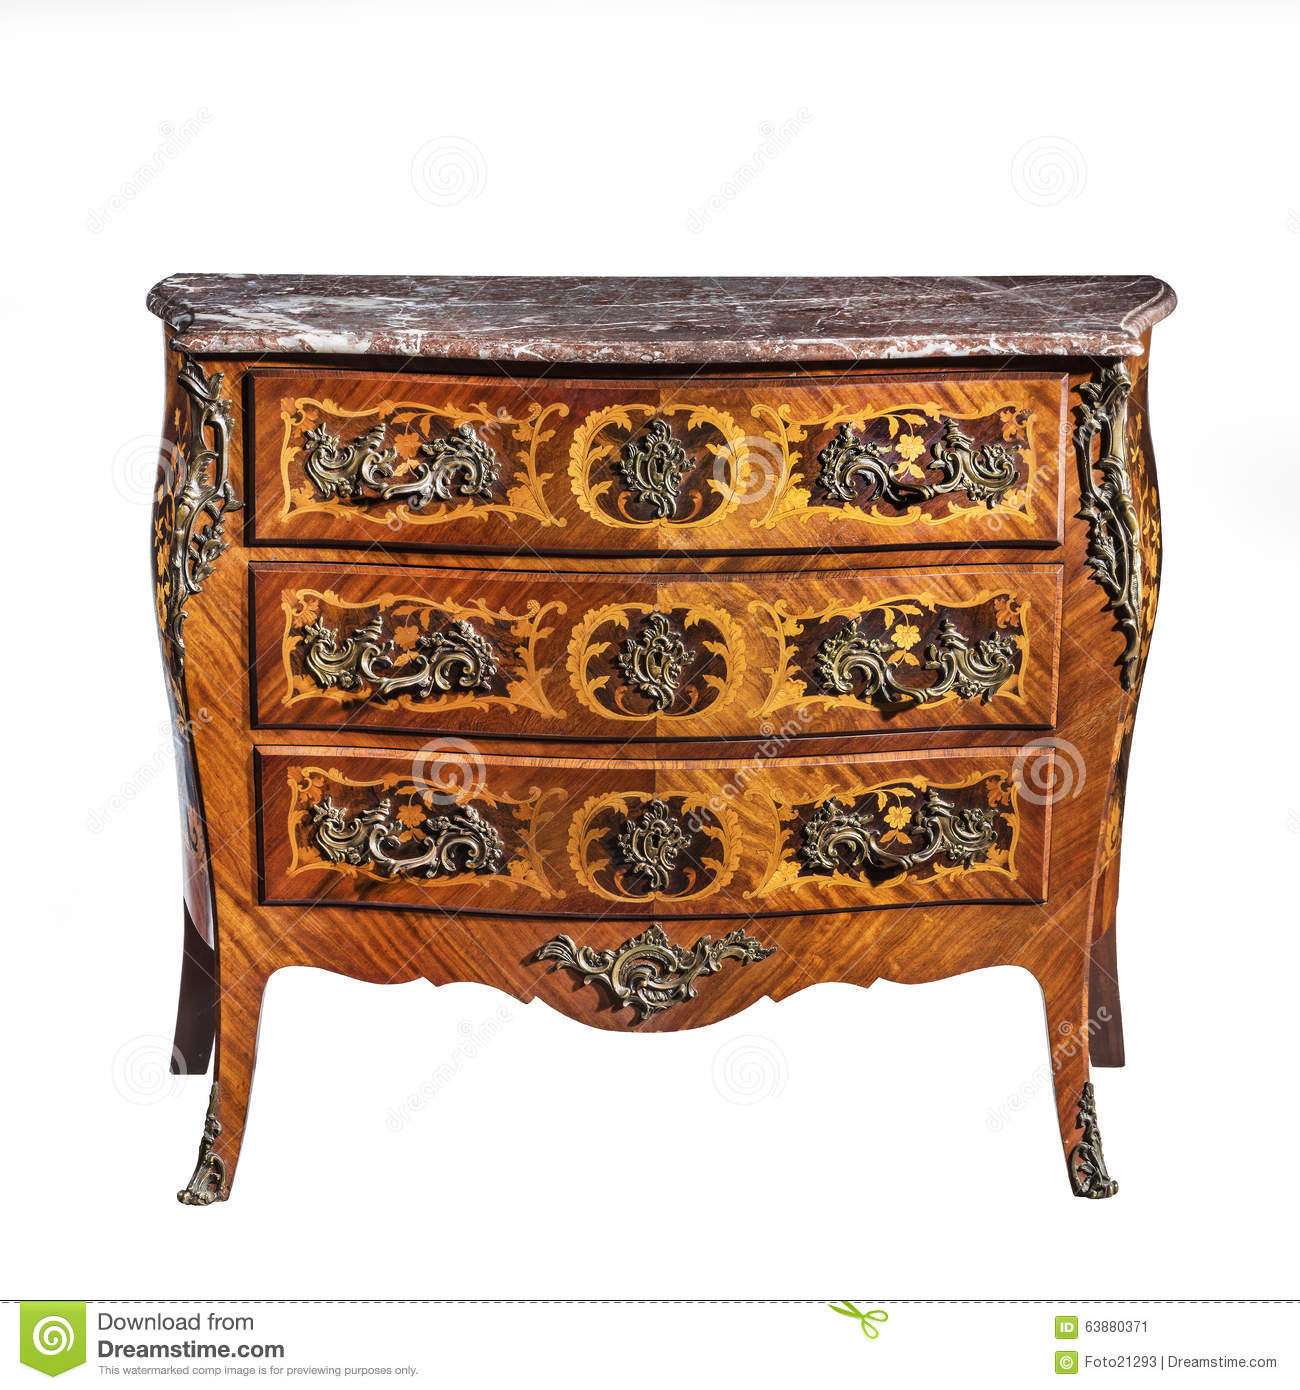 classic old original vintage wooden chest bureau commode stock photo image 63880371. Black Bedroom Furniture Sets. Home Design Ideas